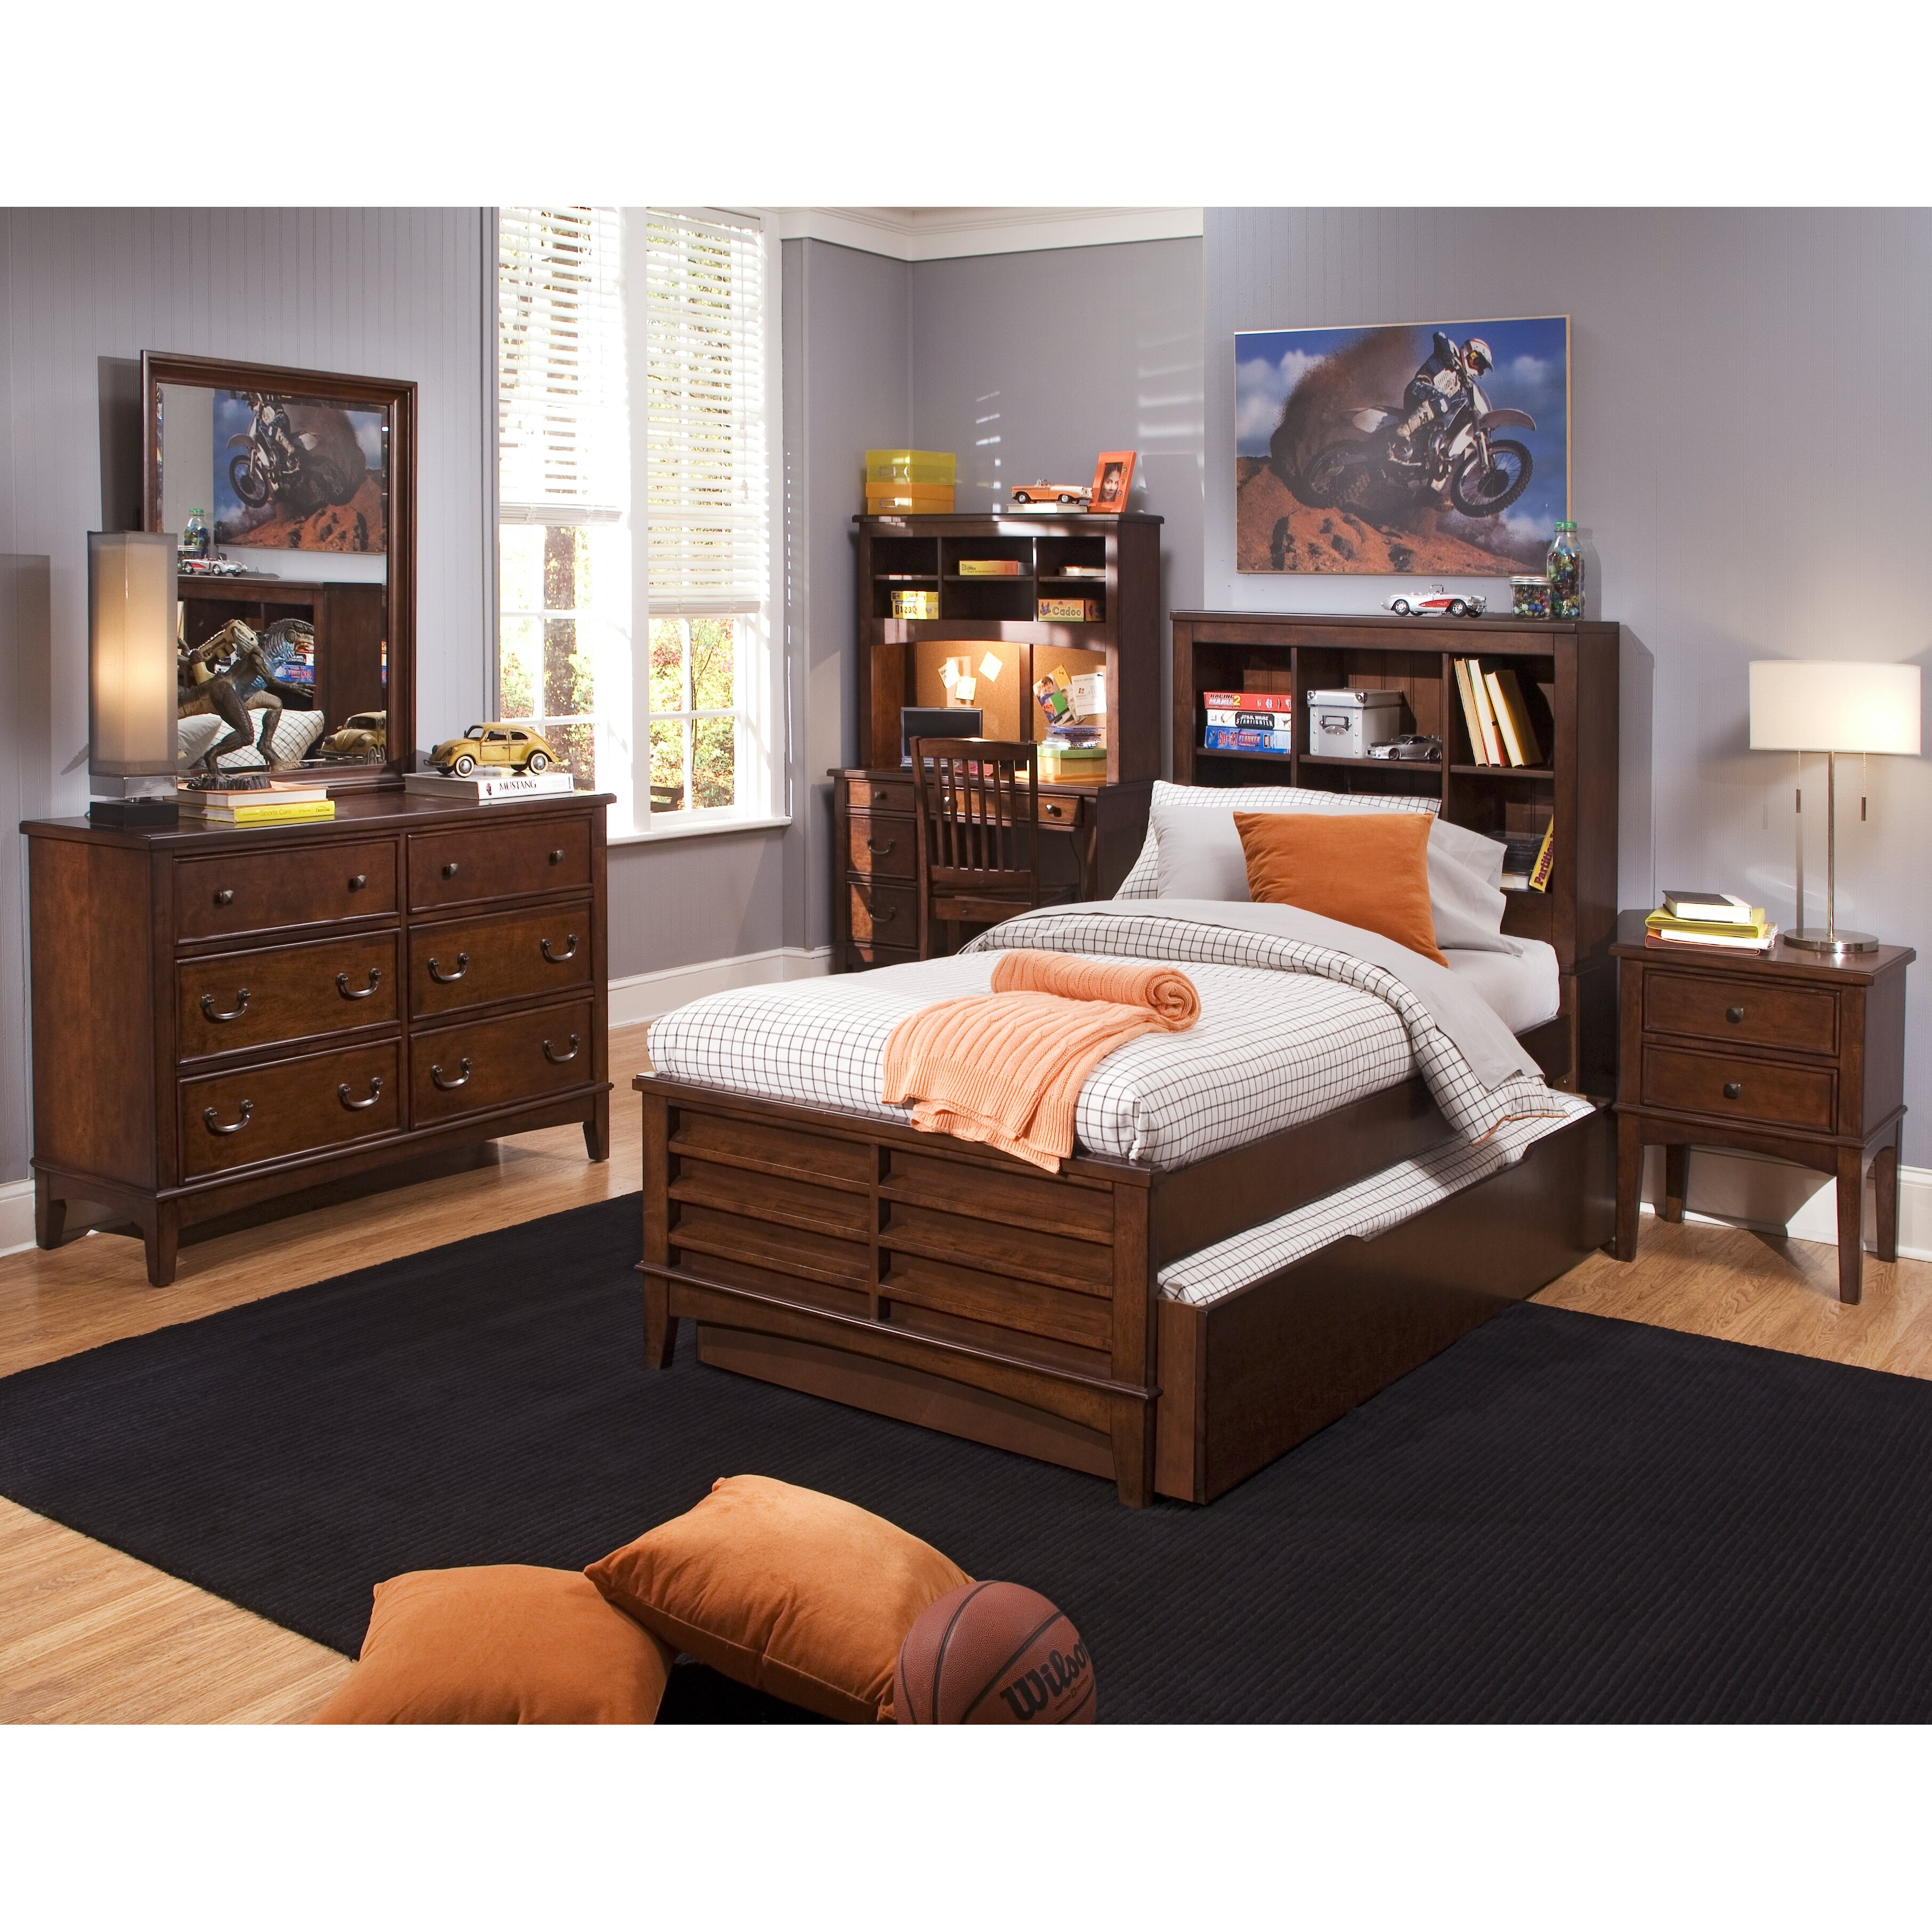 Chelsea Square Youth Bedroom 44 by Liberty Furniture